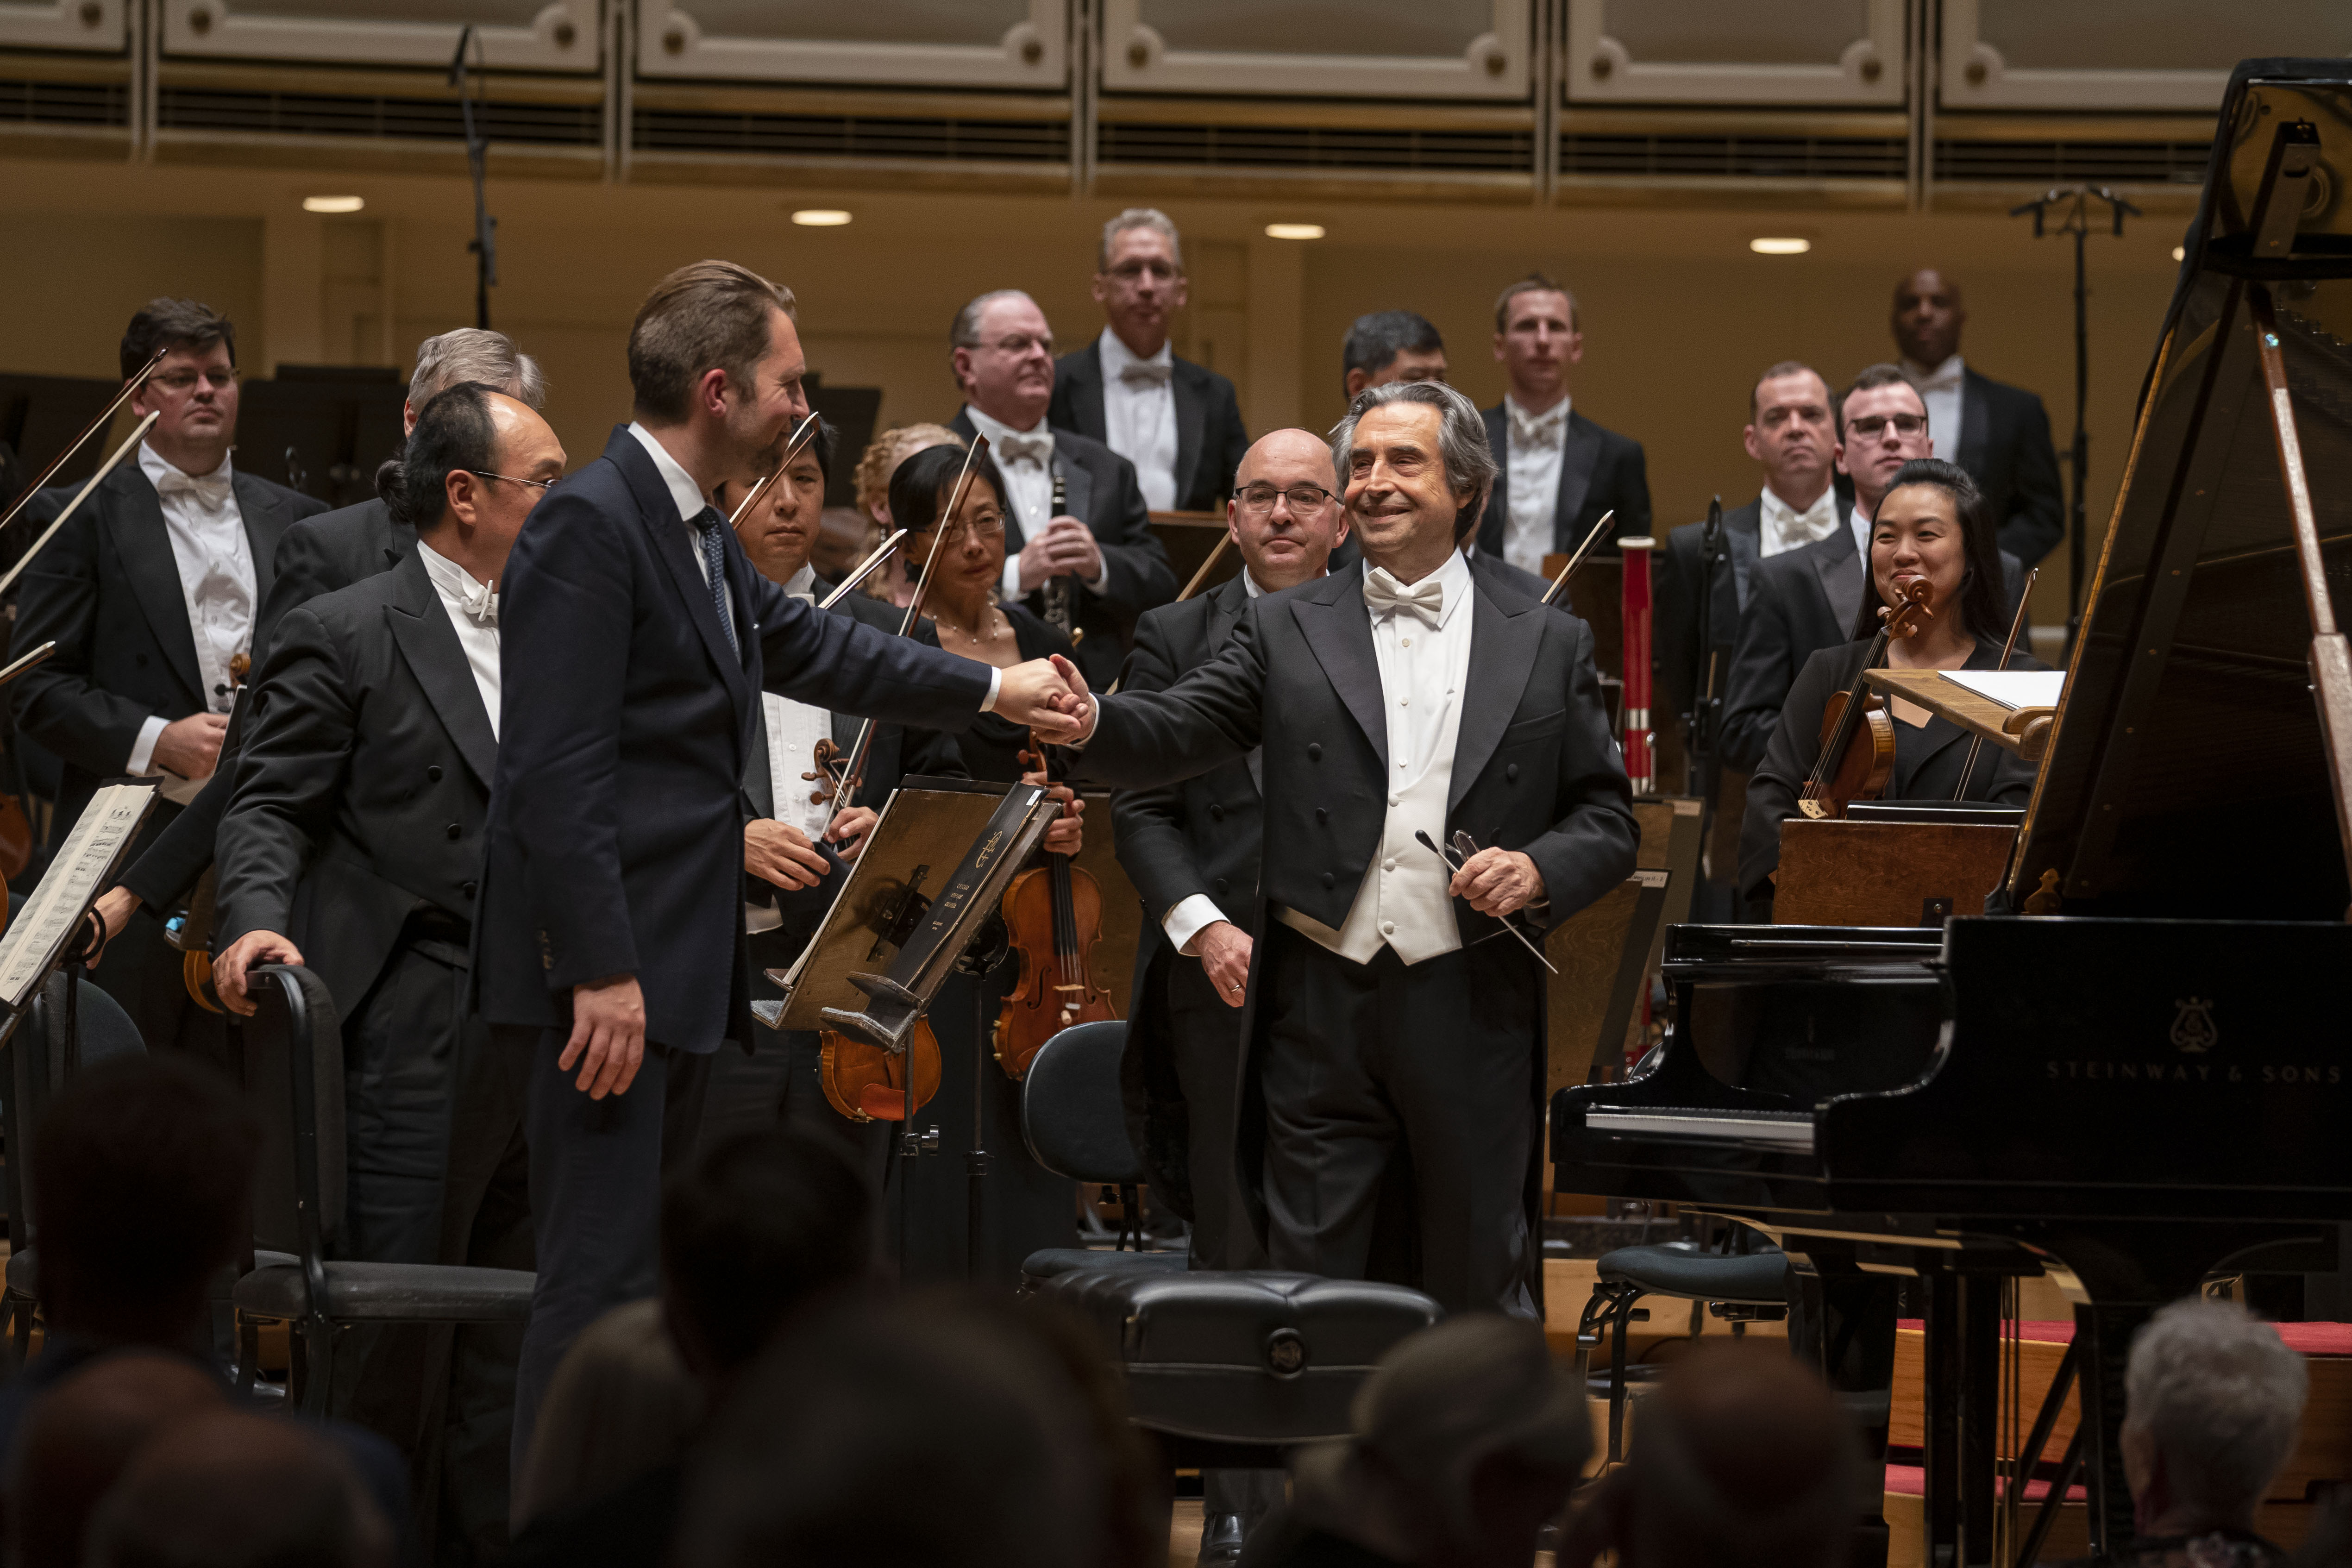 Leif Ove Andsnes and Riccardo Muti congratulate each other following their performance of Grieg's Piano Concerto with the Chicago Symphony Orchestra Thursday night in Orchestra Hall.